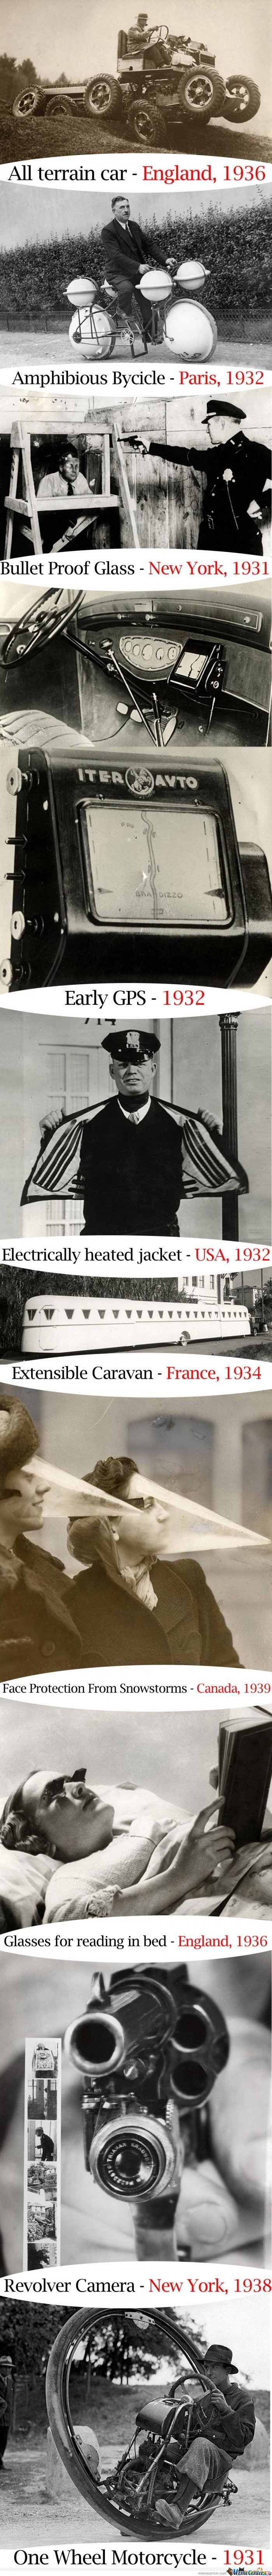 Just some old inventions